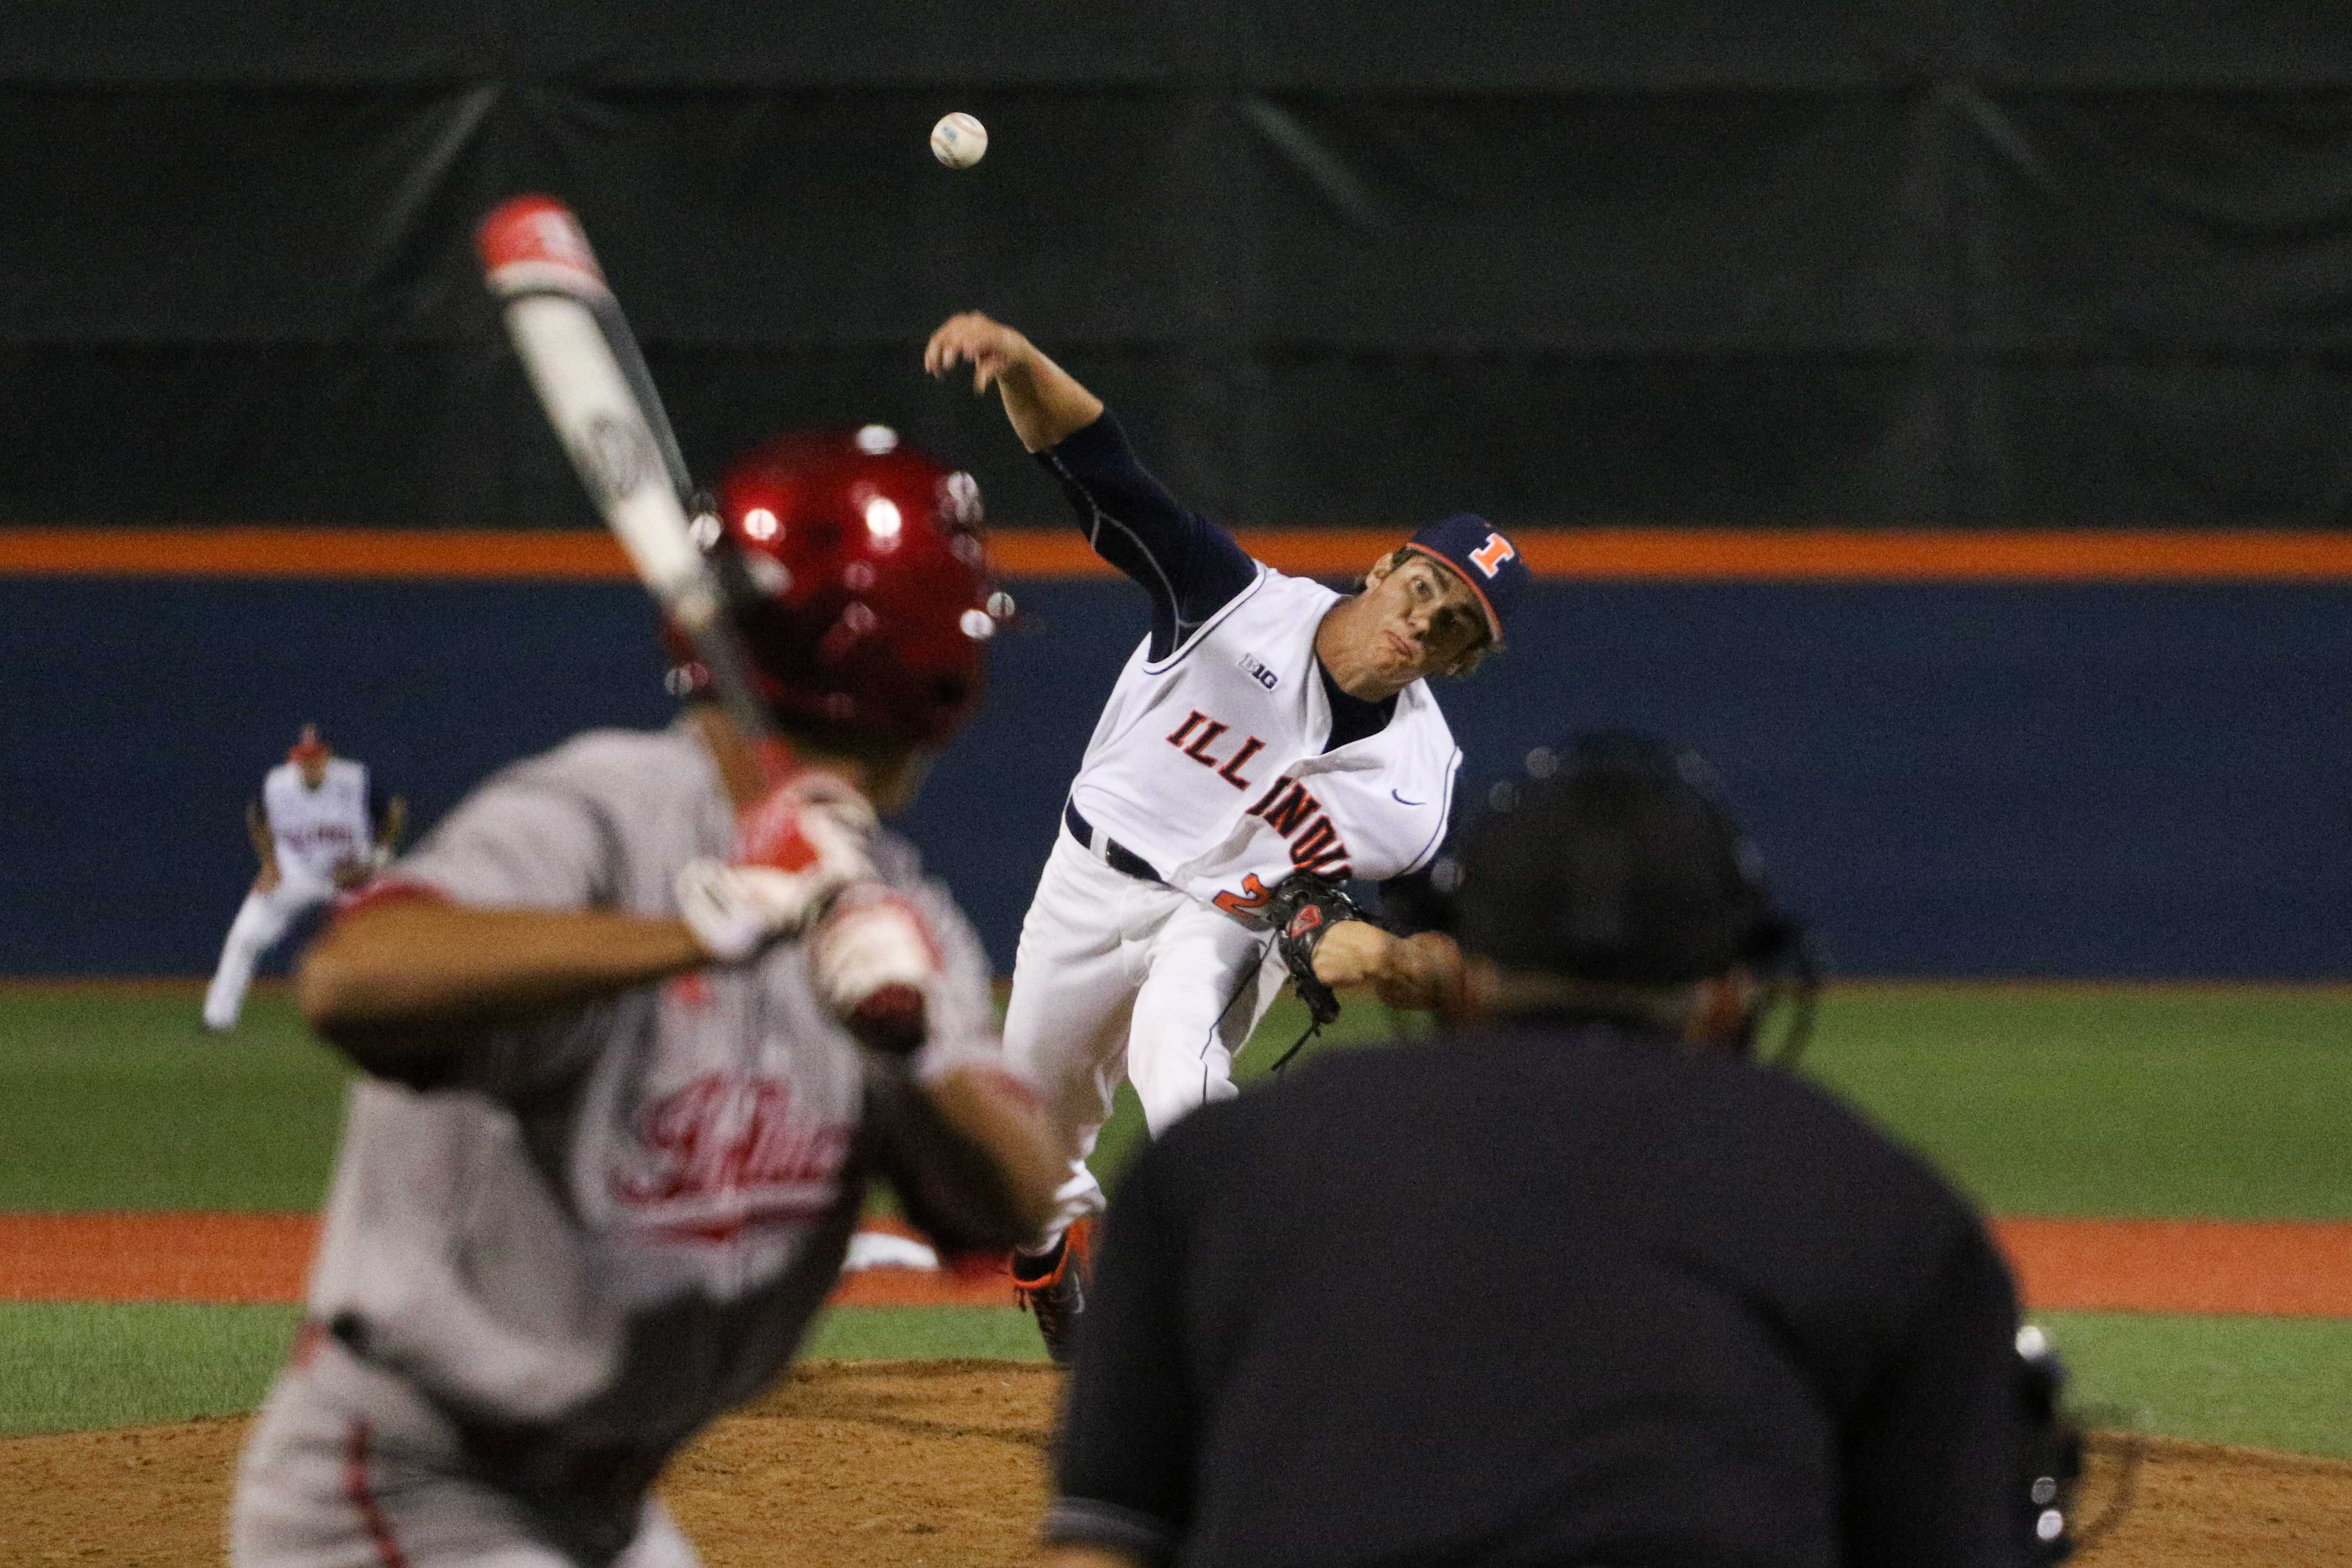 Illinois' Cody Sedlock throws a pitch during the baseball game againstIndiana at Illinois Field on April17, 2015. Illinois won 5-1.